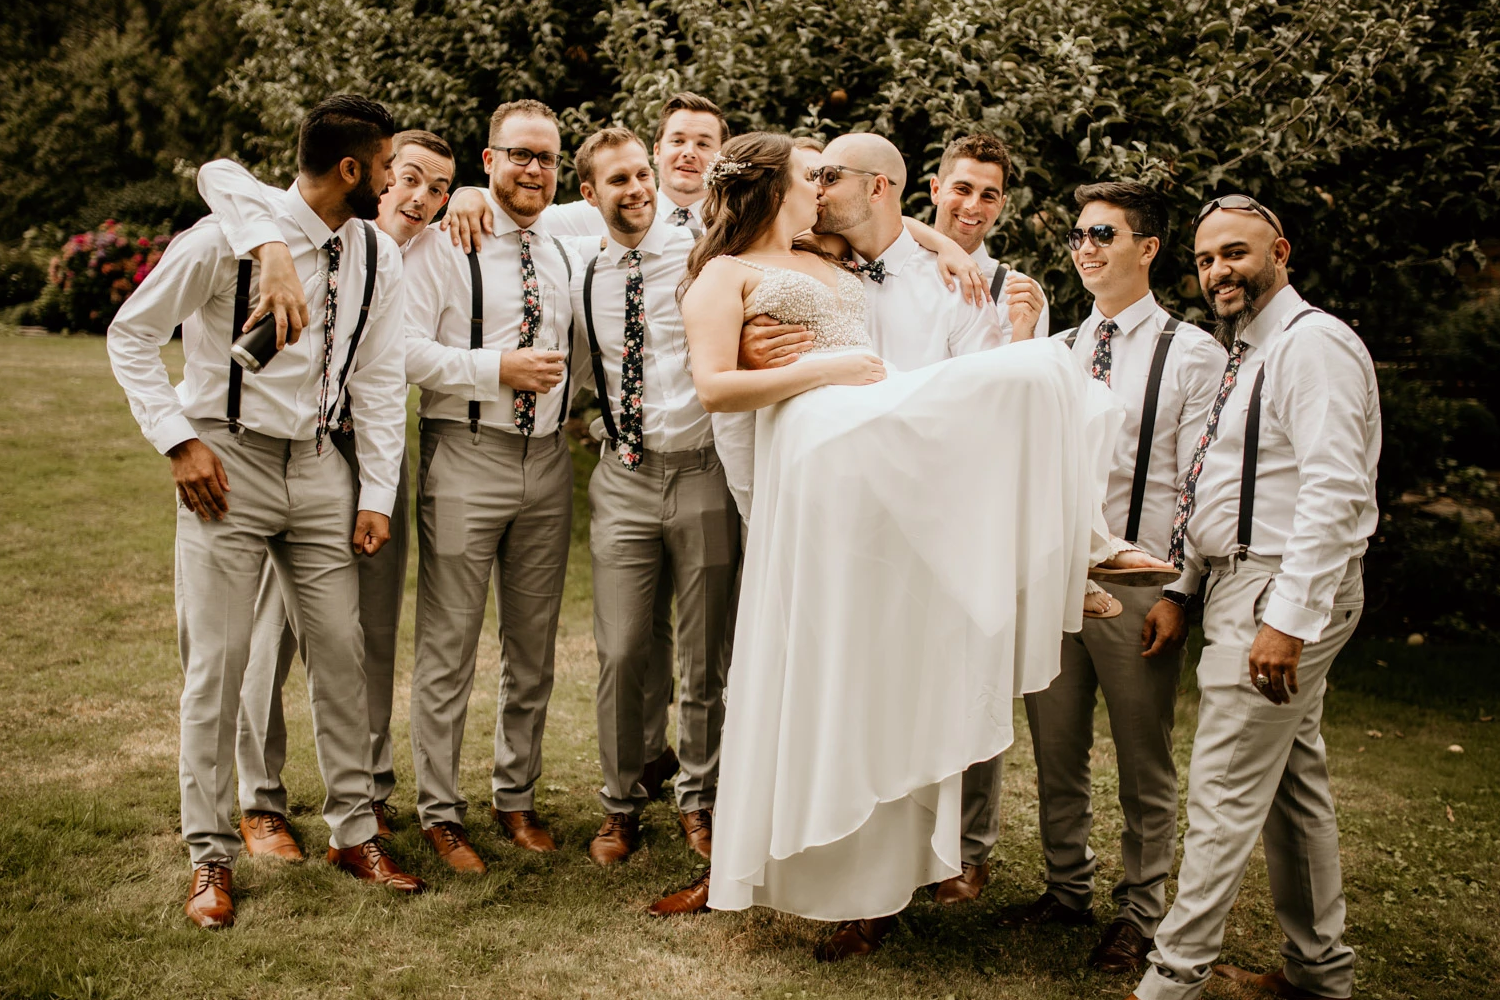 Spencer and Kelly celebrate their wedding with friends and family